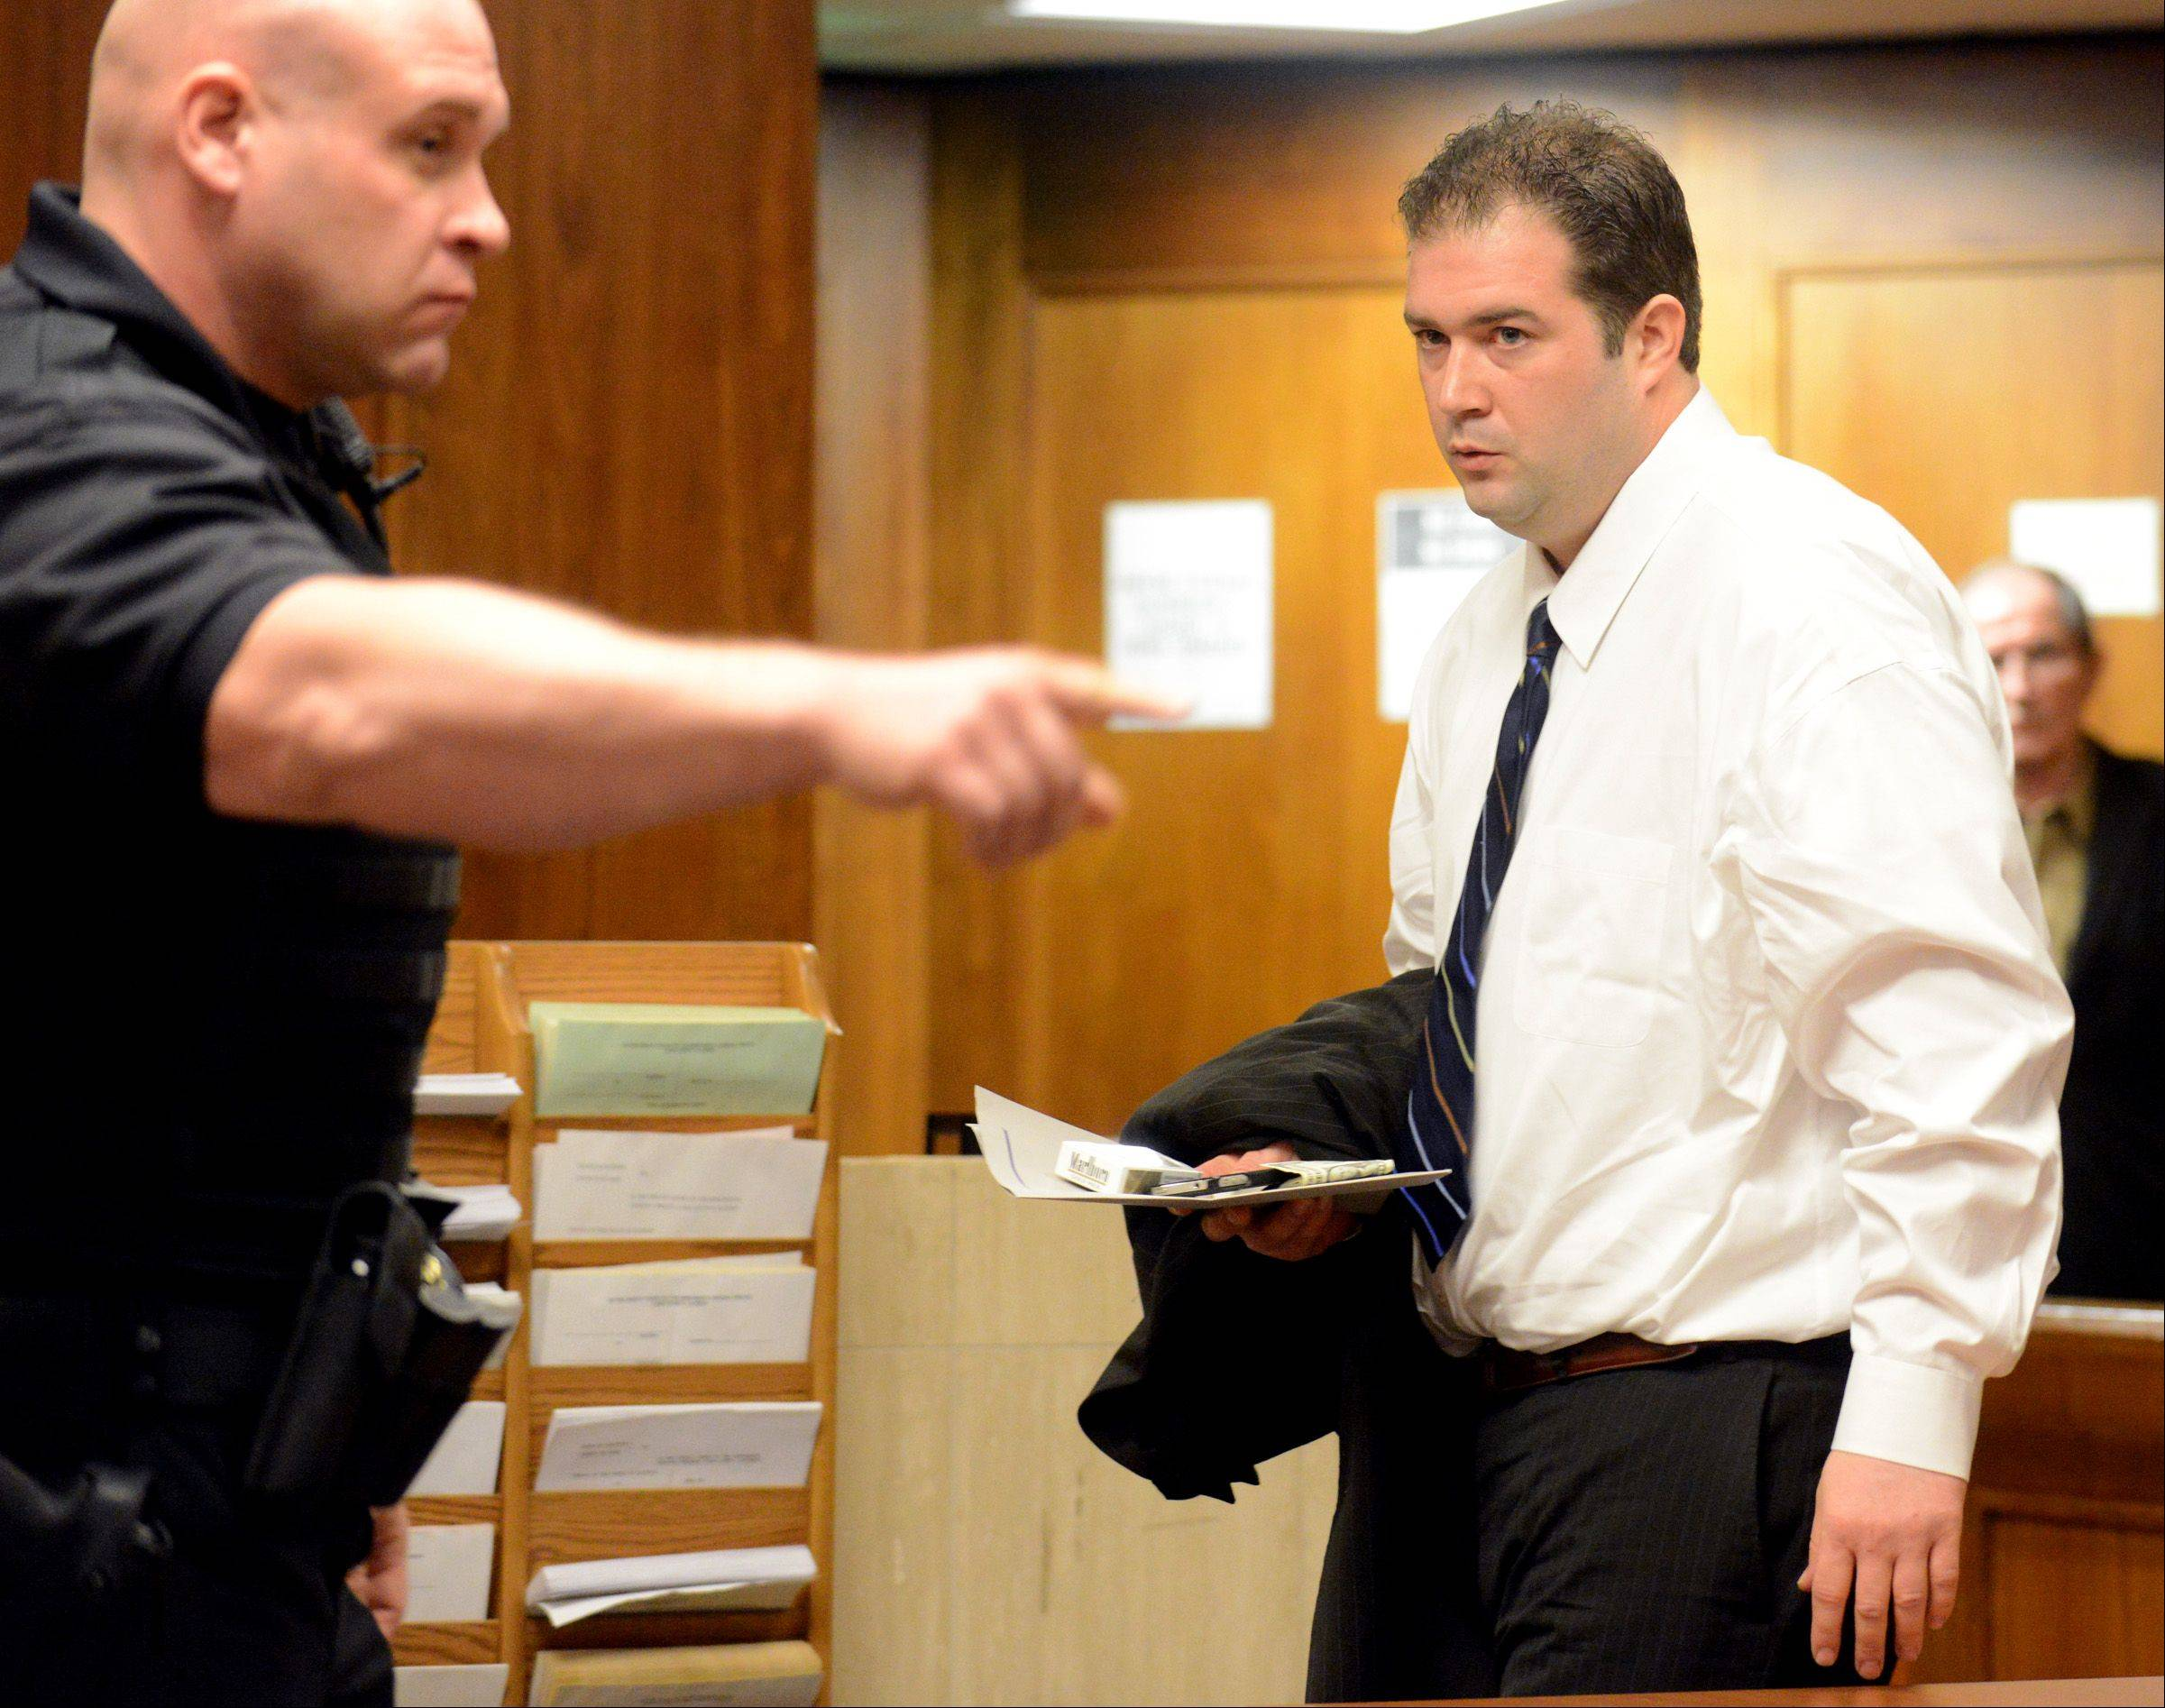 News photographer takes first pictures in Lake County courtroom